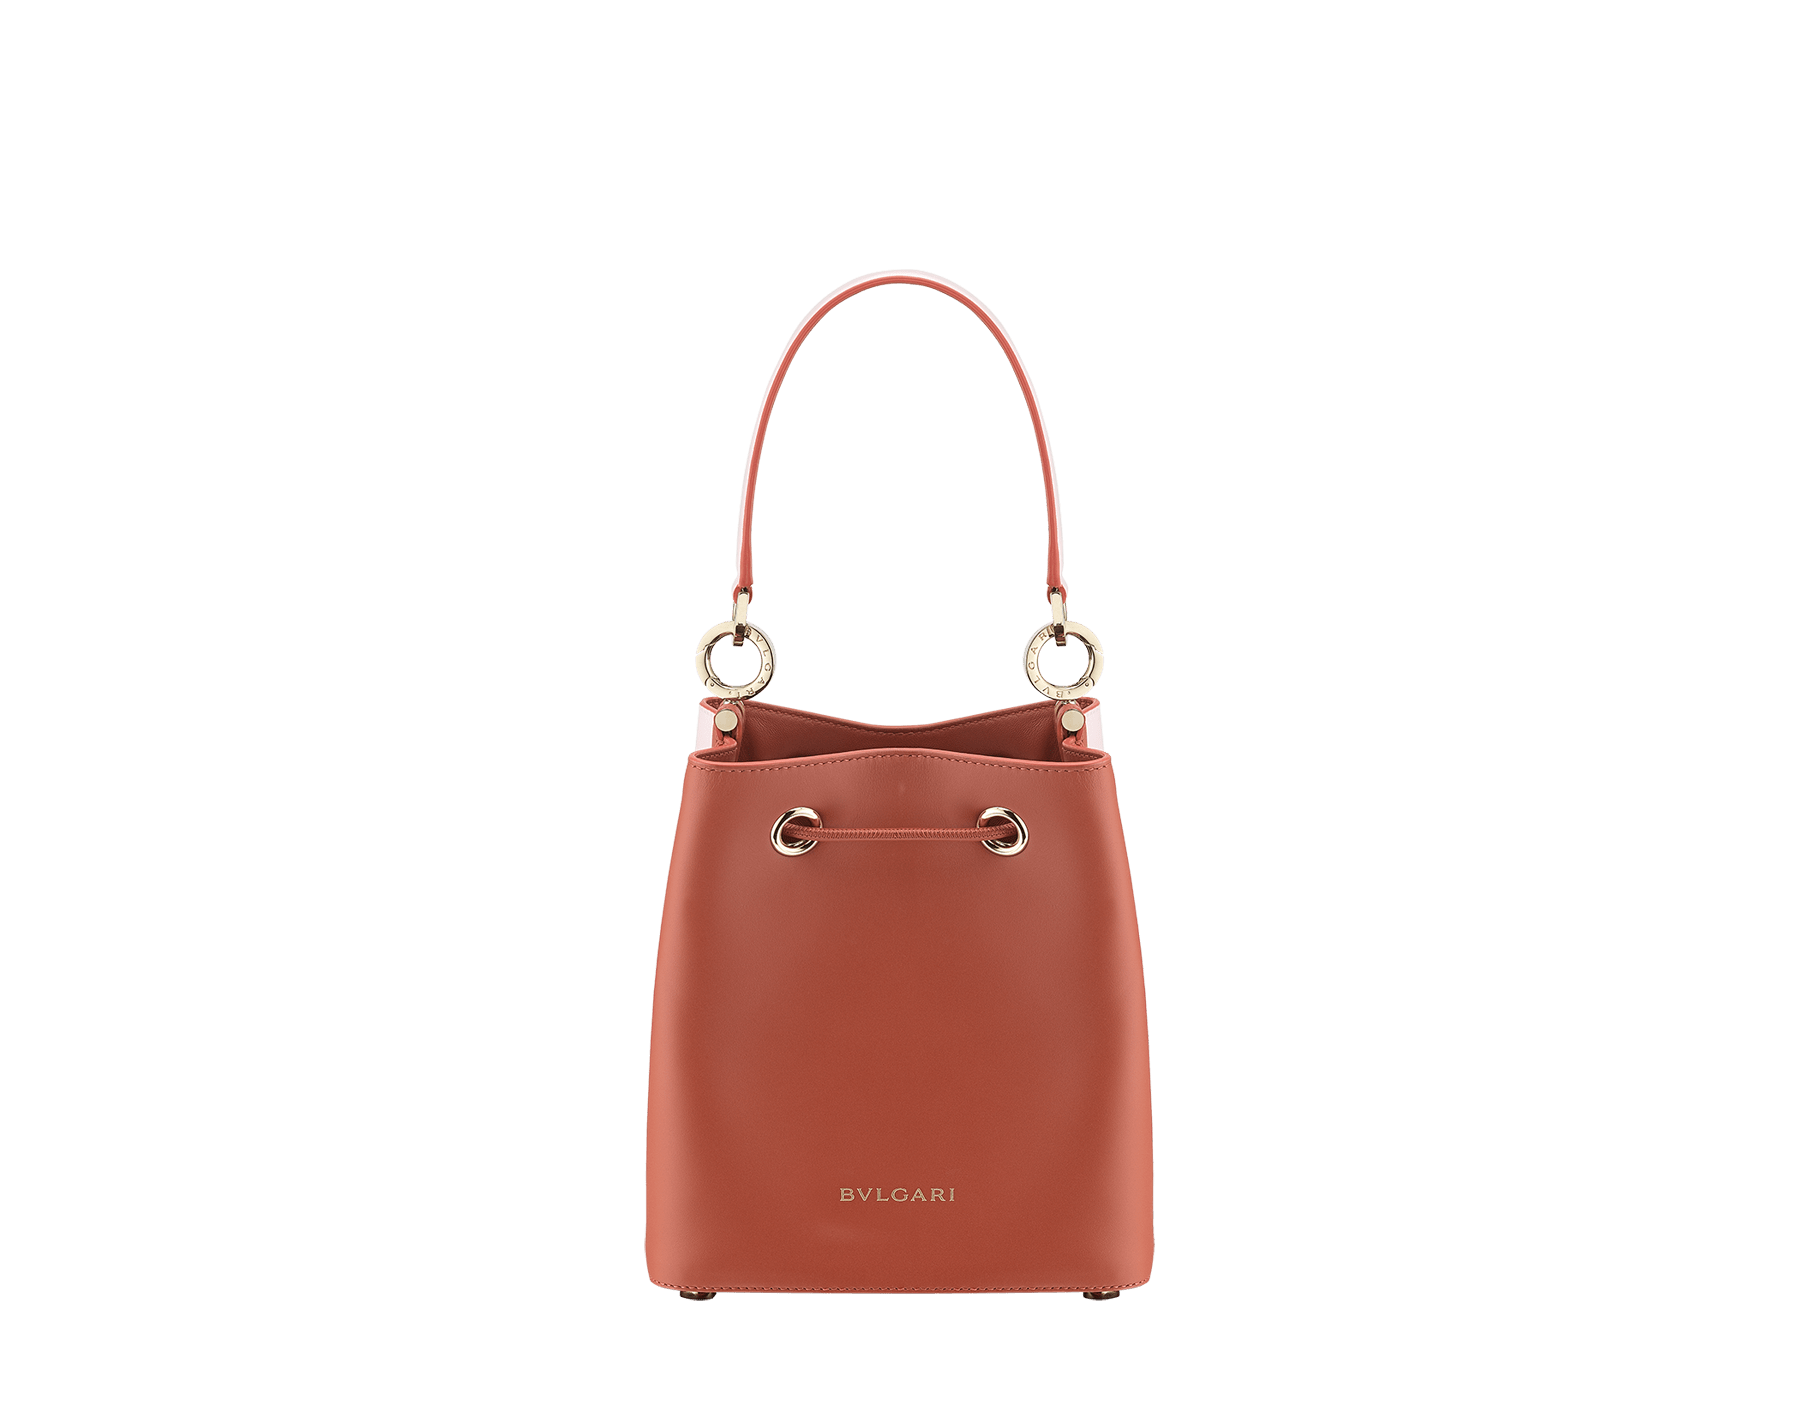 Bucket B.zero1 in rosa di francia and imperial topaz smooth calf leather and imperial topaz nappa inner lining. Hardware in light gold plated brass, featuring B.zero1 décor. 288951 image 3